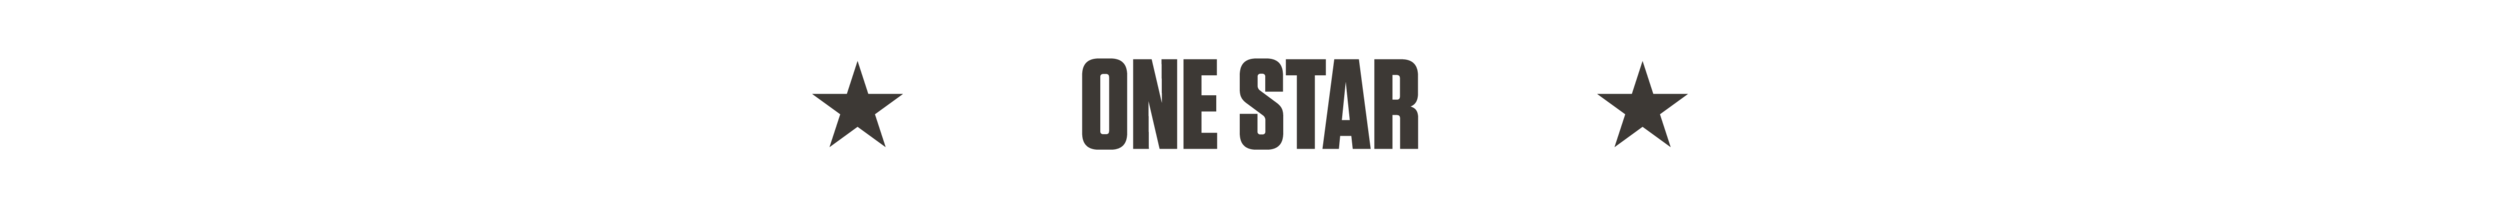 Sponsor Stars_One Star.png